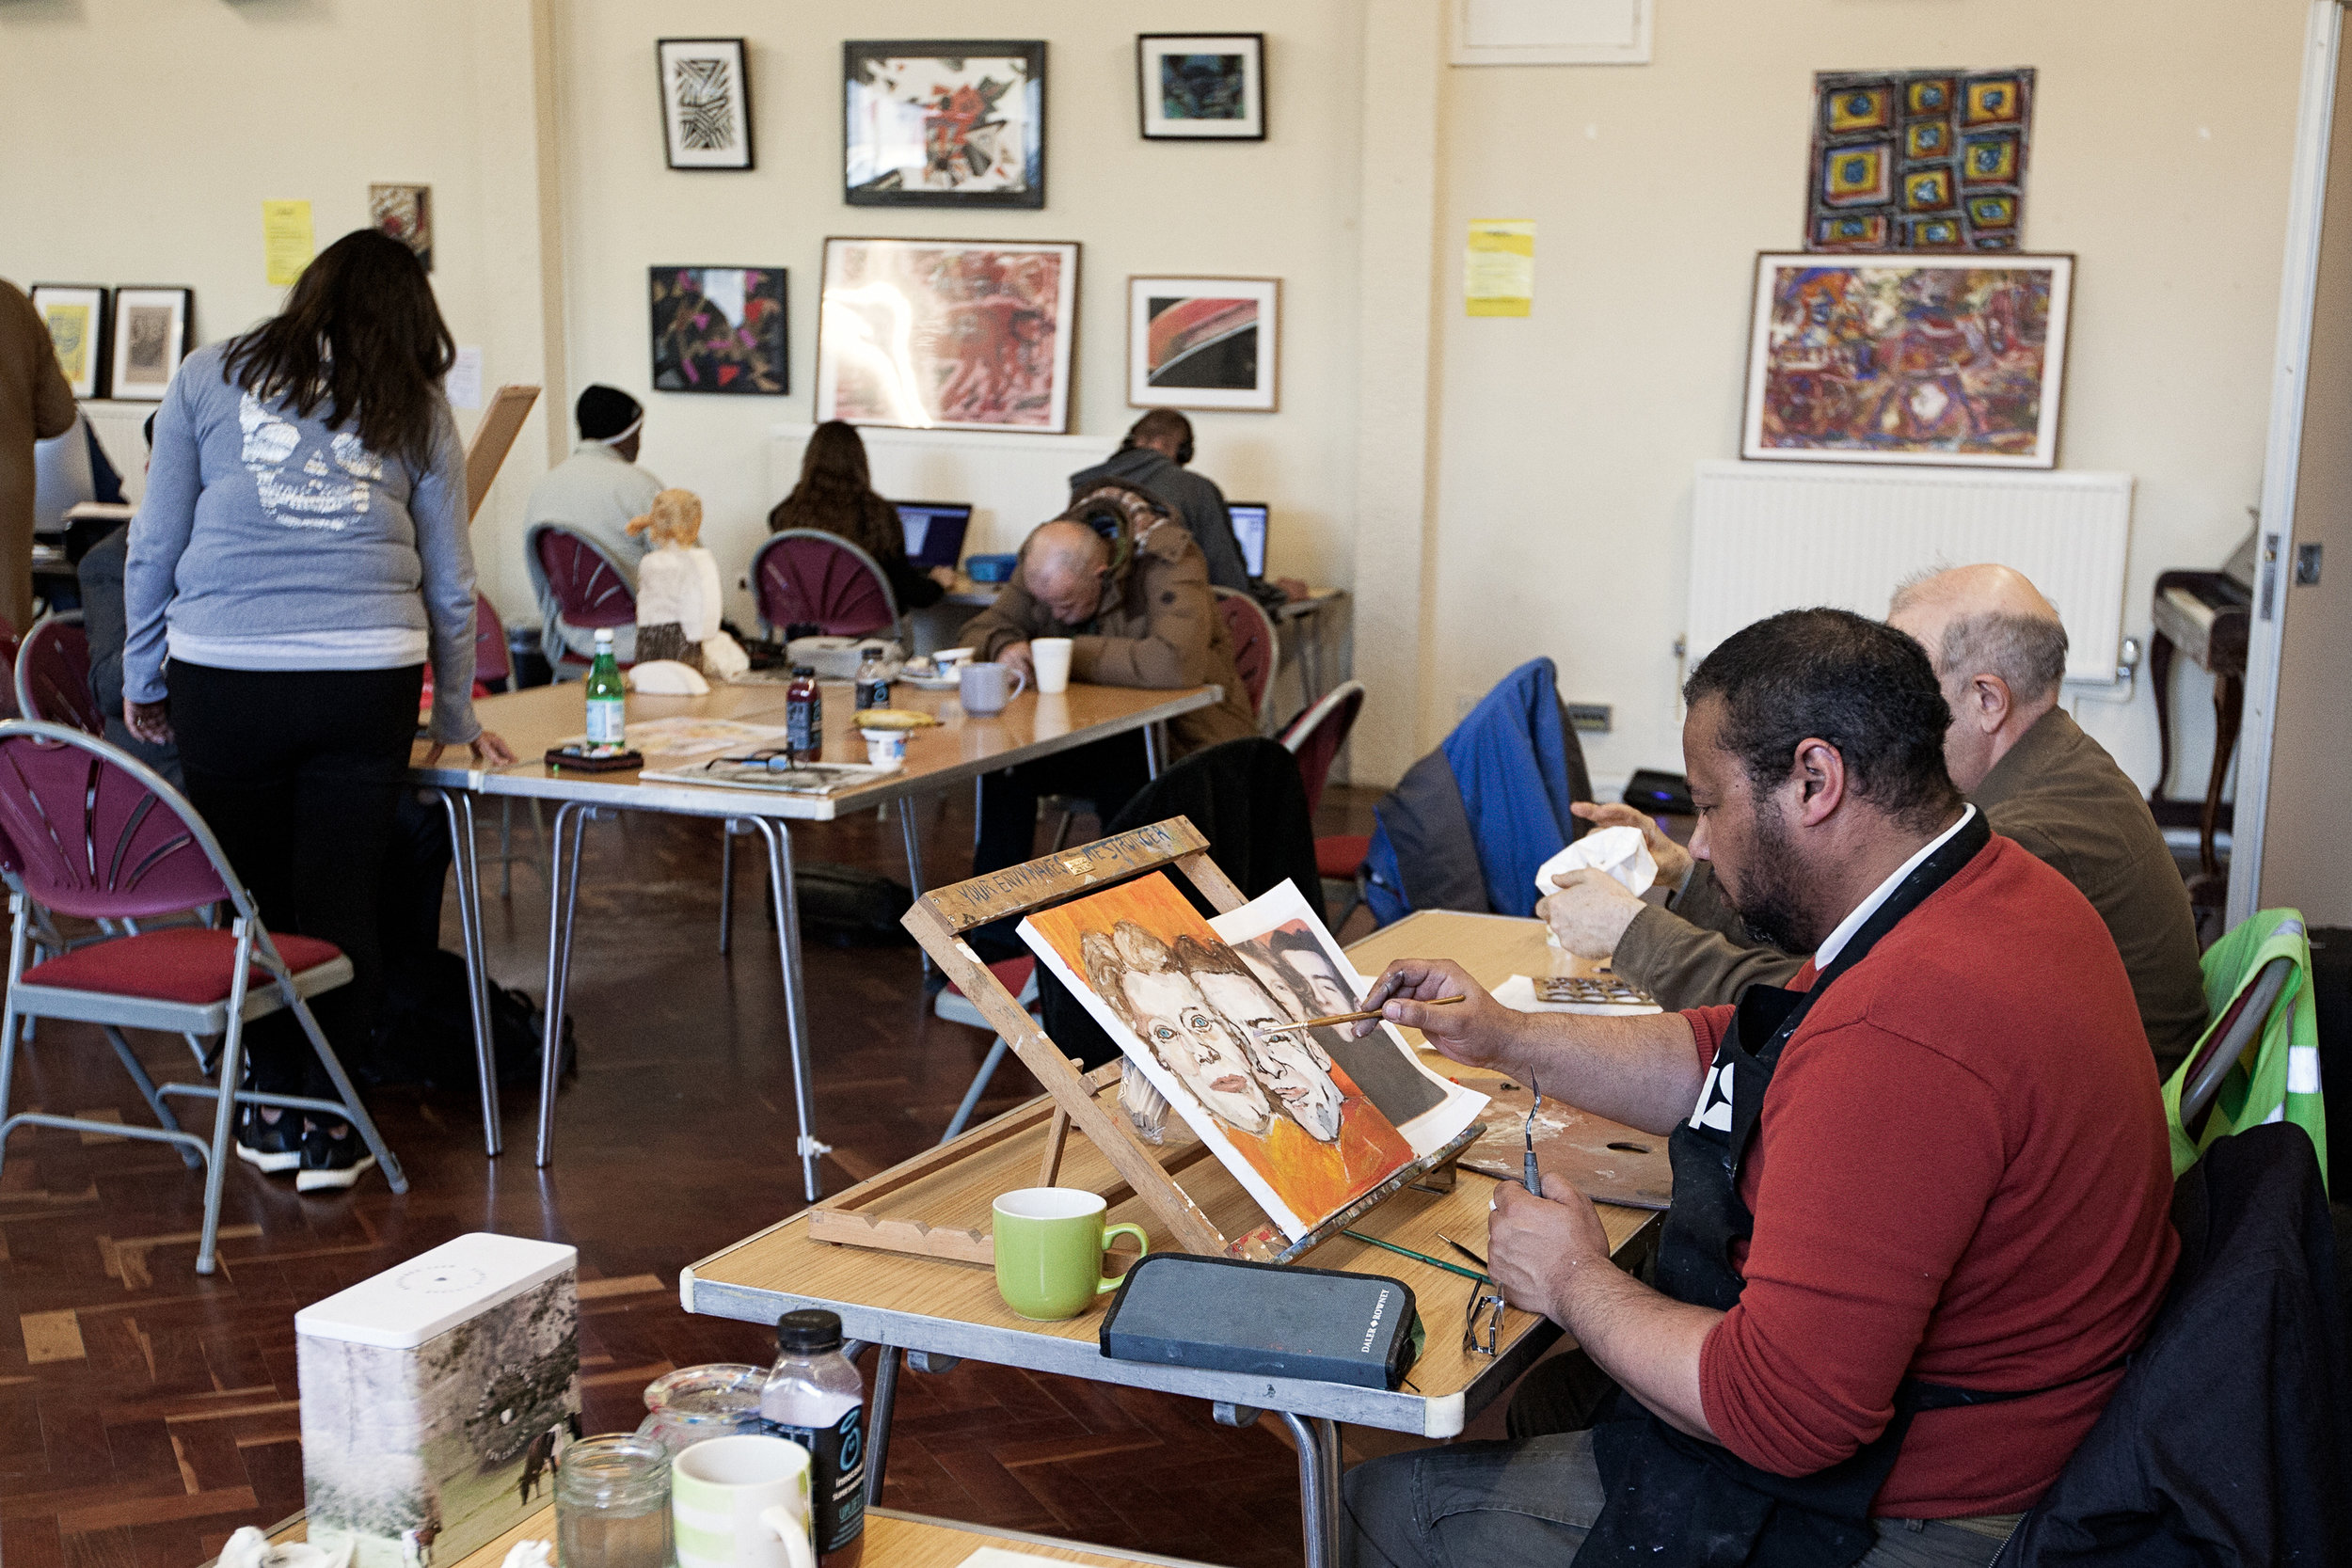 The Arts Group - The arts table runs daily and provides all materials. At any moment there will be people working on drawings at the table, painting on easels, working on mosaics or developing a portrait.The process is valued as much as the product, and artists are encouraged not to be too precious about their work or the outcome, but, principally, just to enjoy the act of creating it. Ultimately we reckon anyone can paint, illustrate, sculpt, draw - they just need to commit a bit of time. And have fun, of course.We do our best to help our artists get their work seen and sold: submitting to the Big Issue, organising group and solo exhibitions, taking market stalls, hanging in cafes, submitting to competitions and external exhibitions.